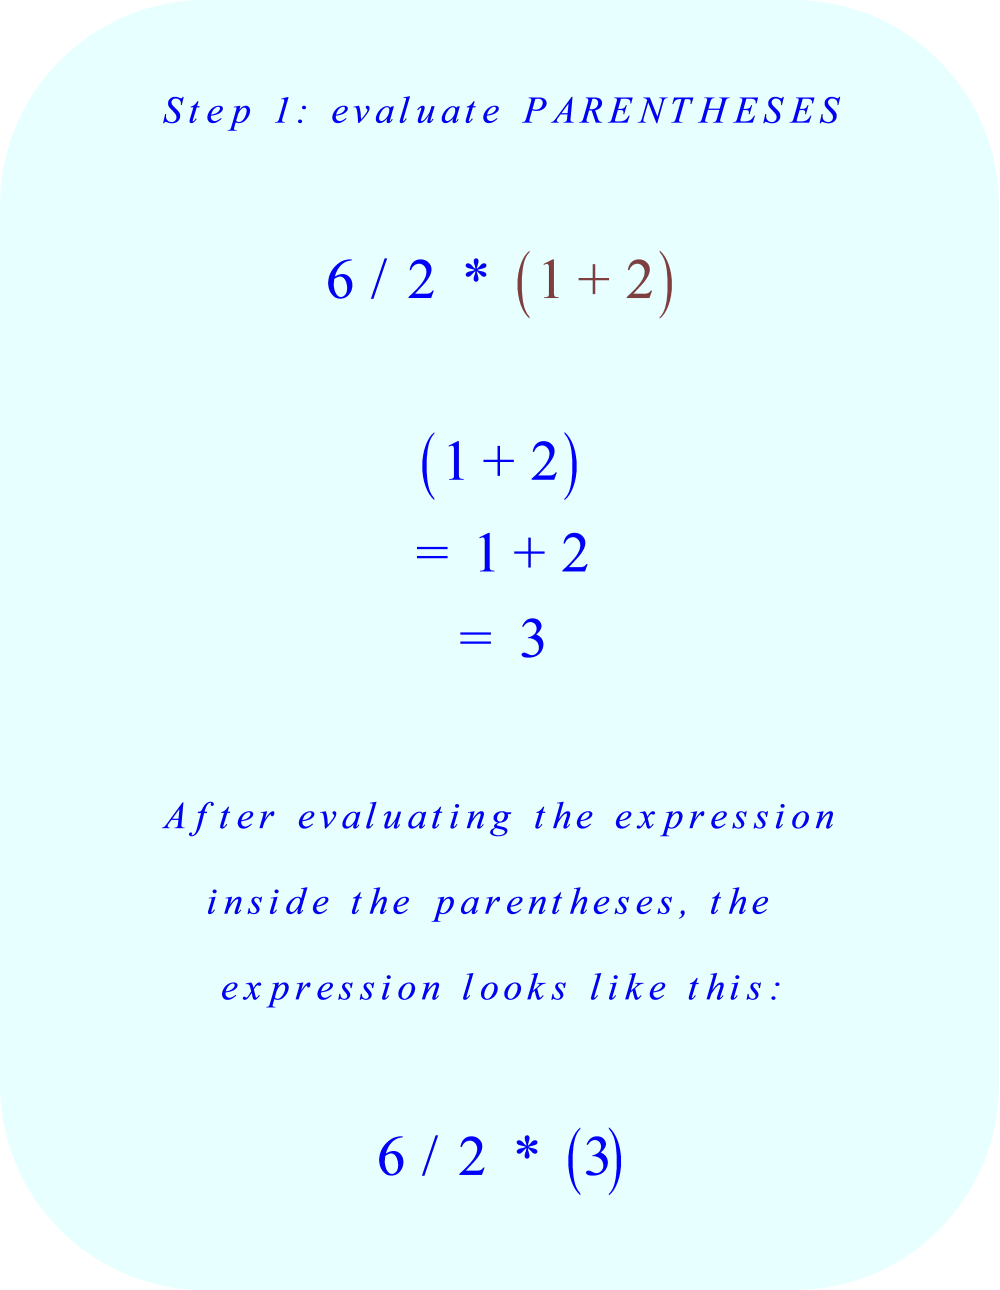 PEMDAS - first, evaluate the expression inside the parentheses